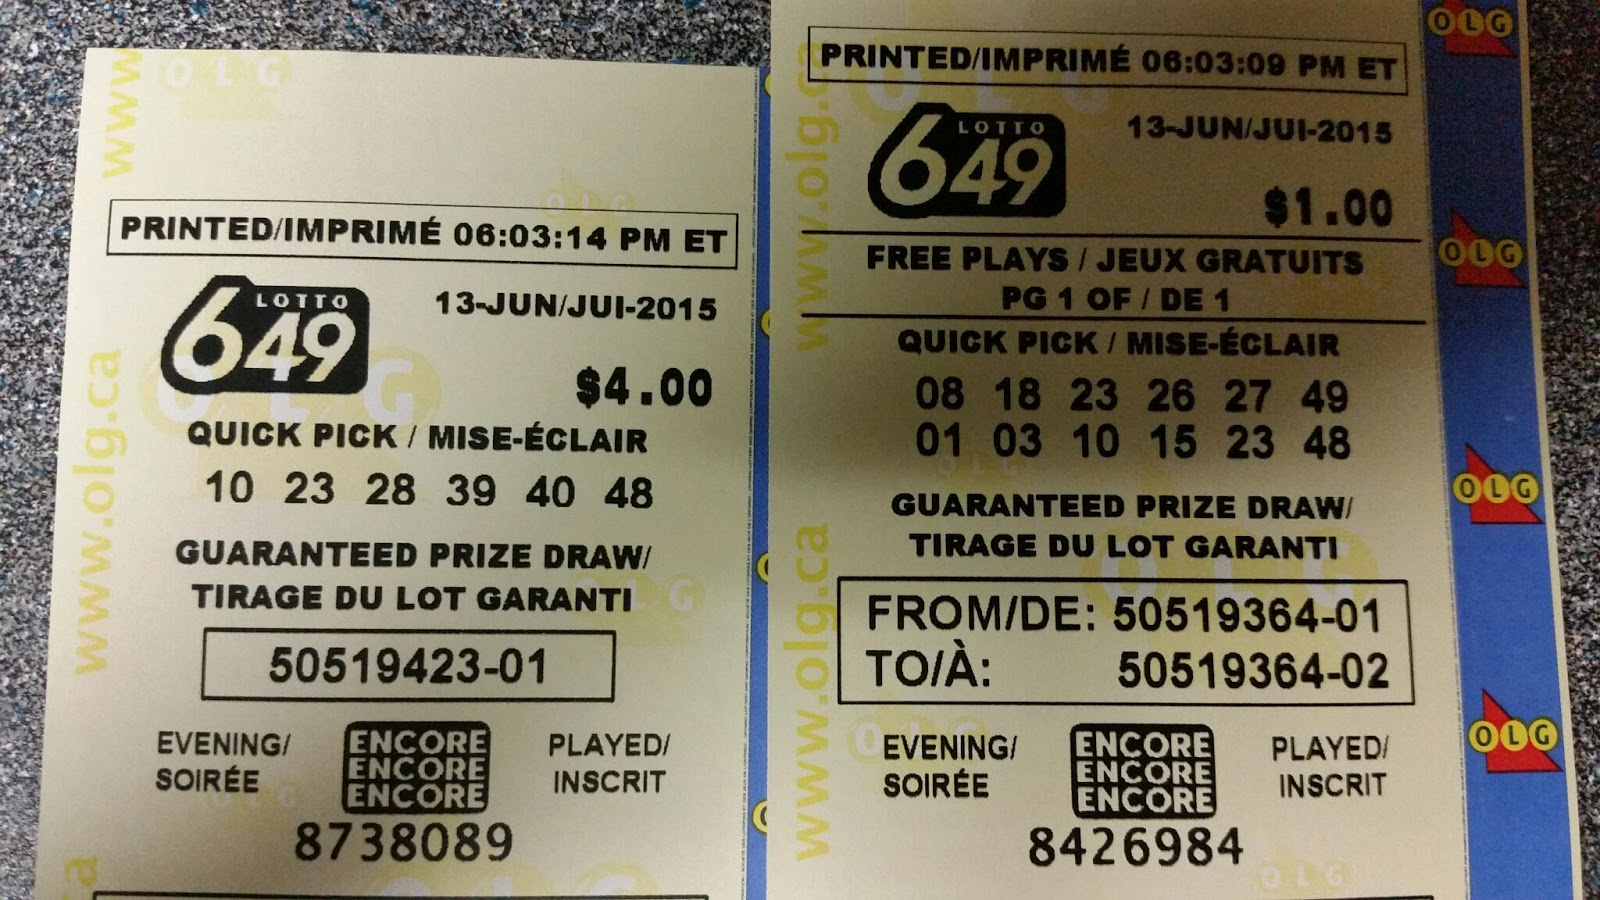 Shannon's Group Lottery: Lotto 6/49 - June 6, 2015 - June ...